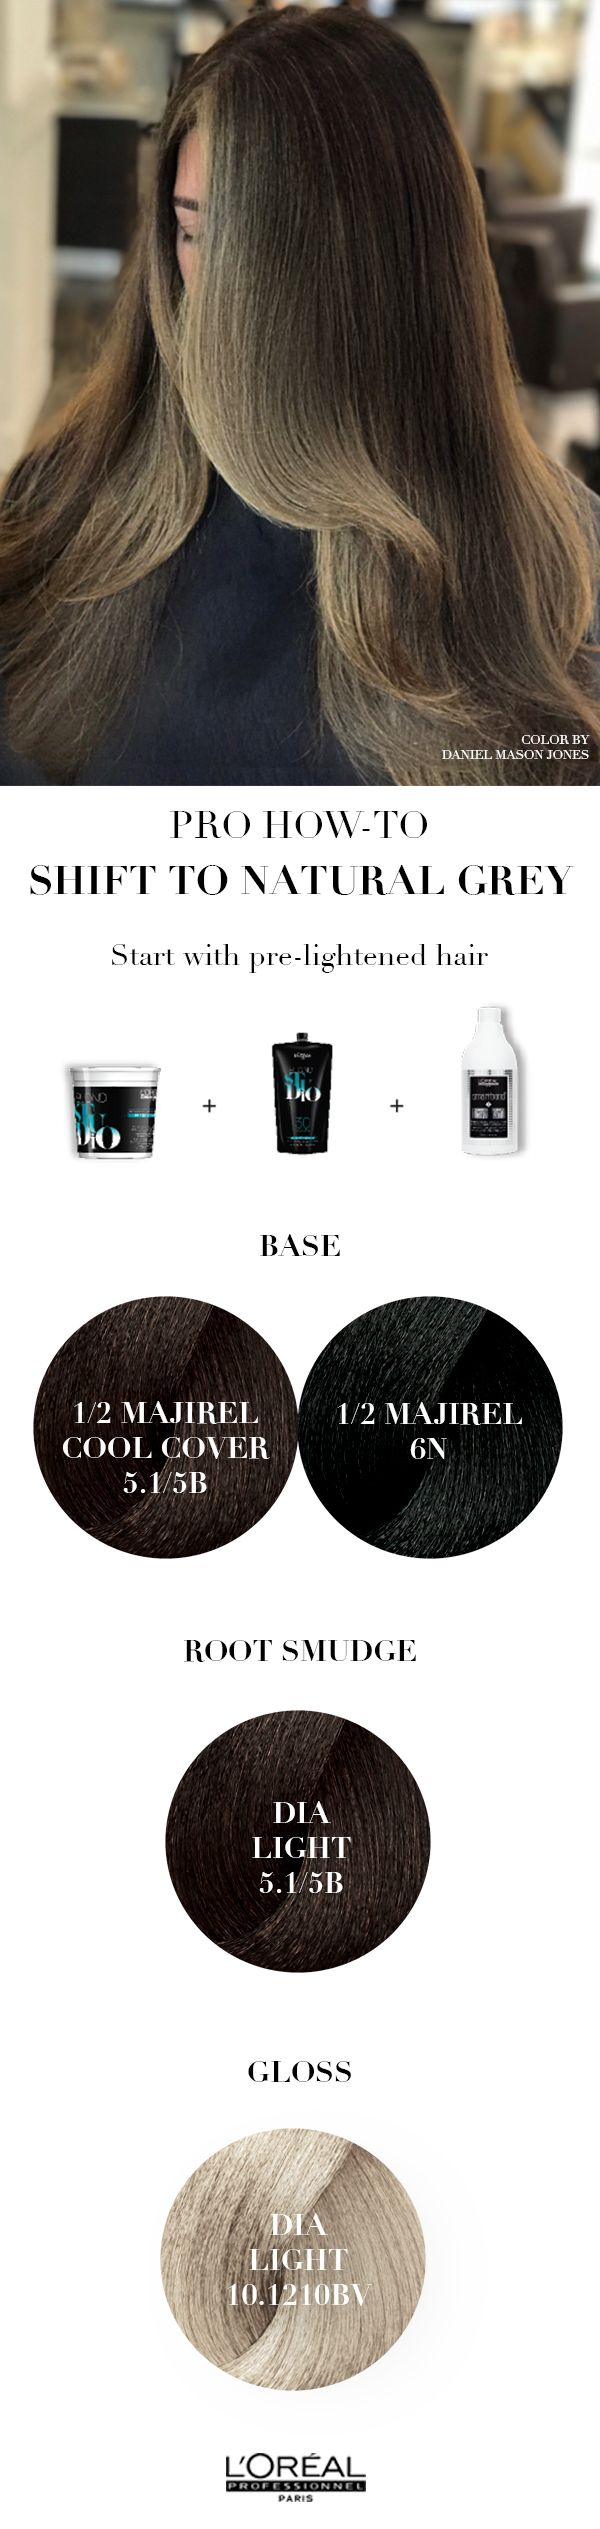 Pro hair how to using silver hair to make the transition to grey hair with L'Oreal Professionnel